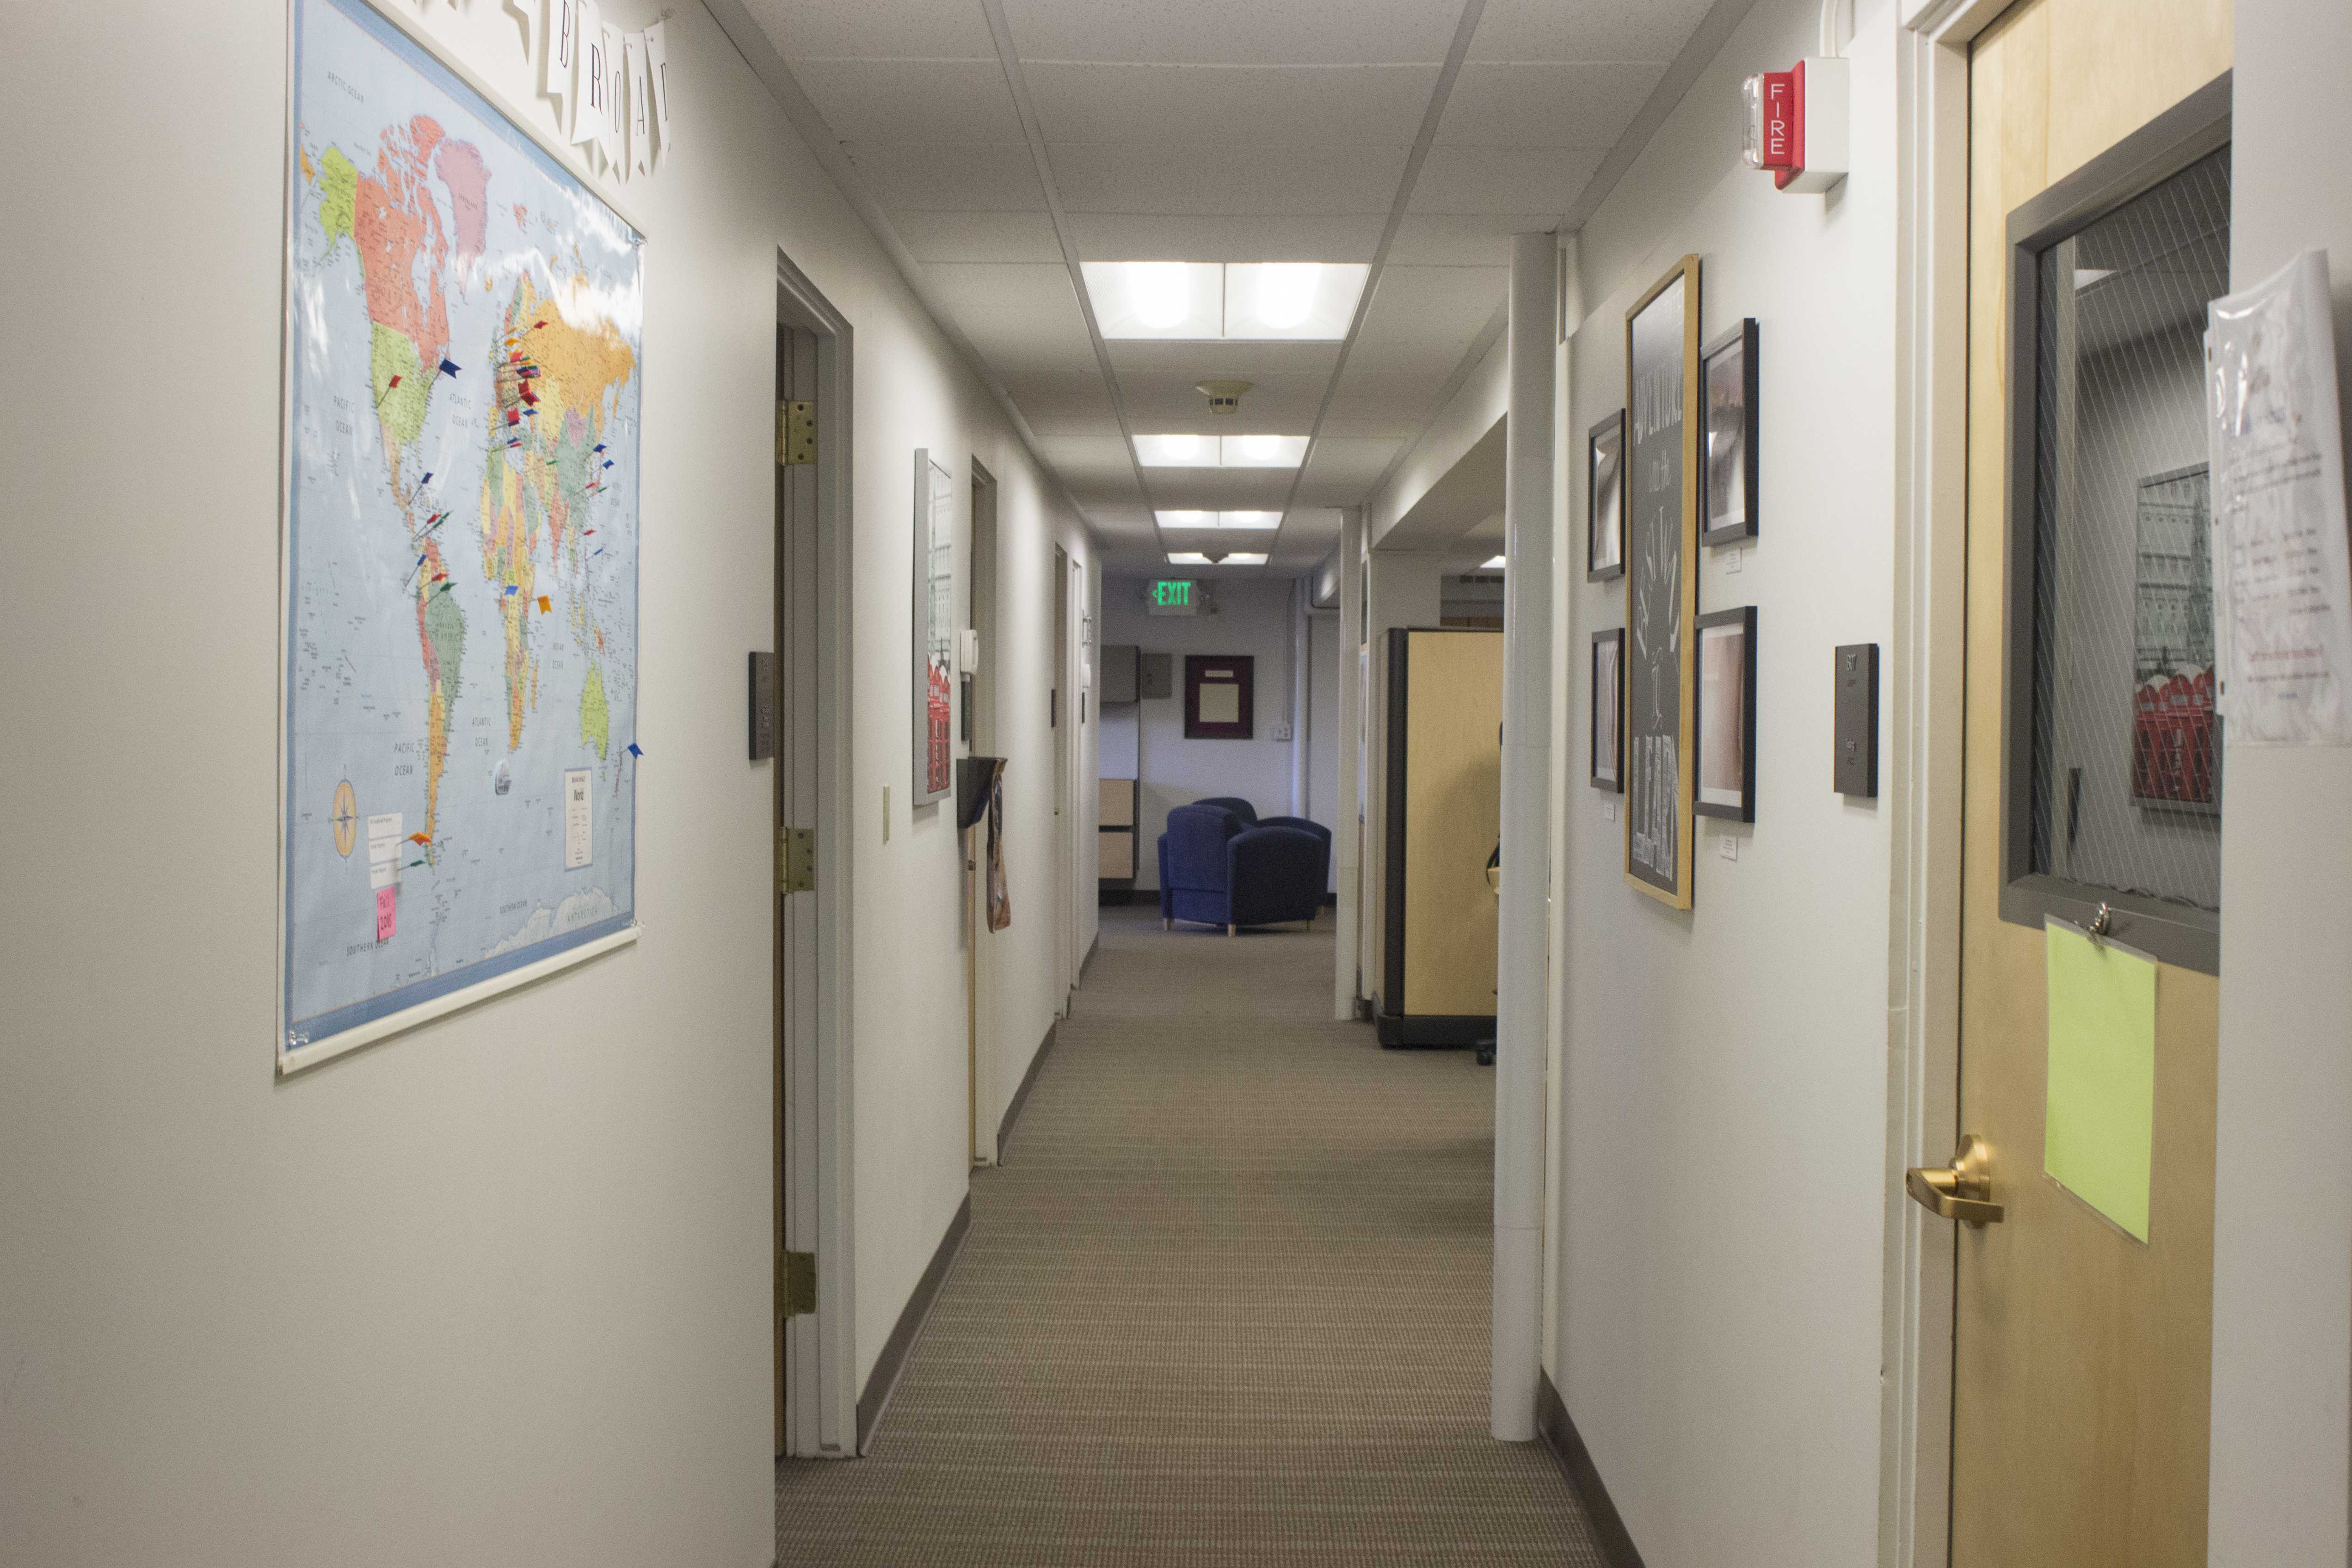 The Center for Learning supplies endless possibilities and opportunities just stop by